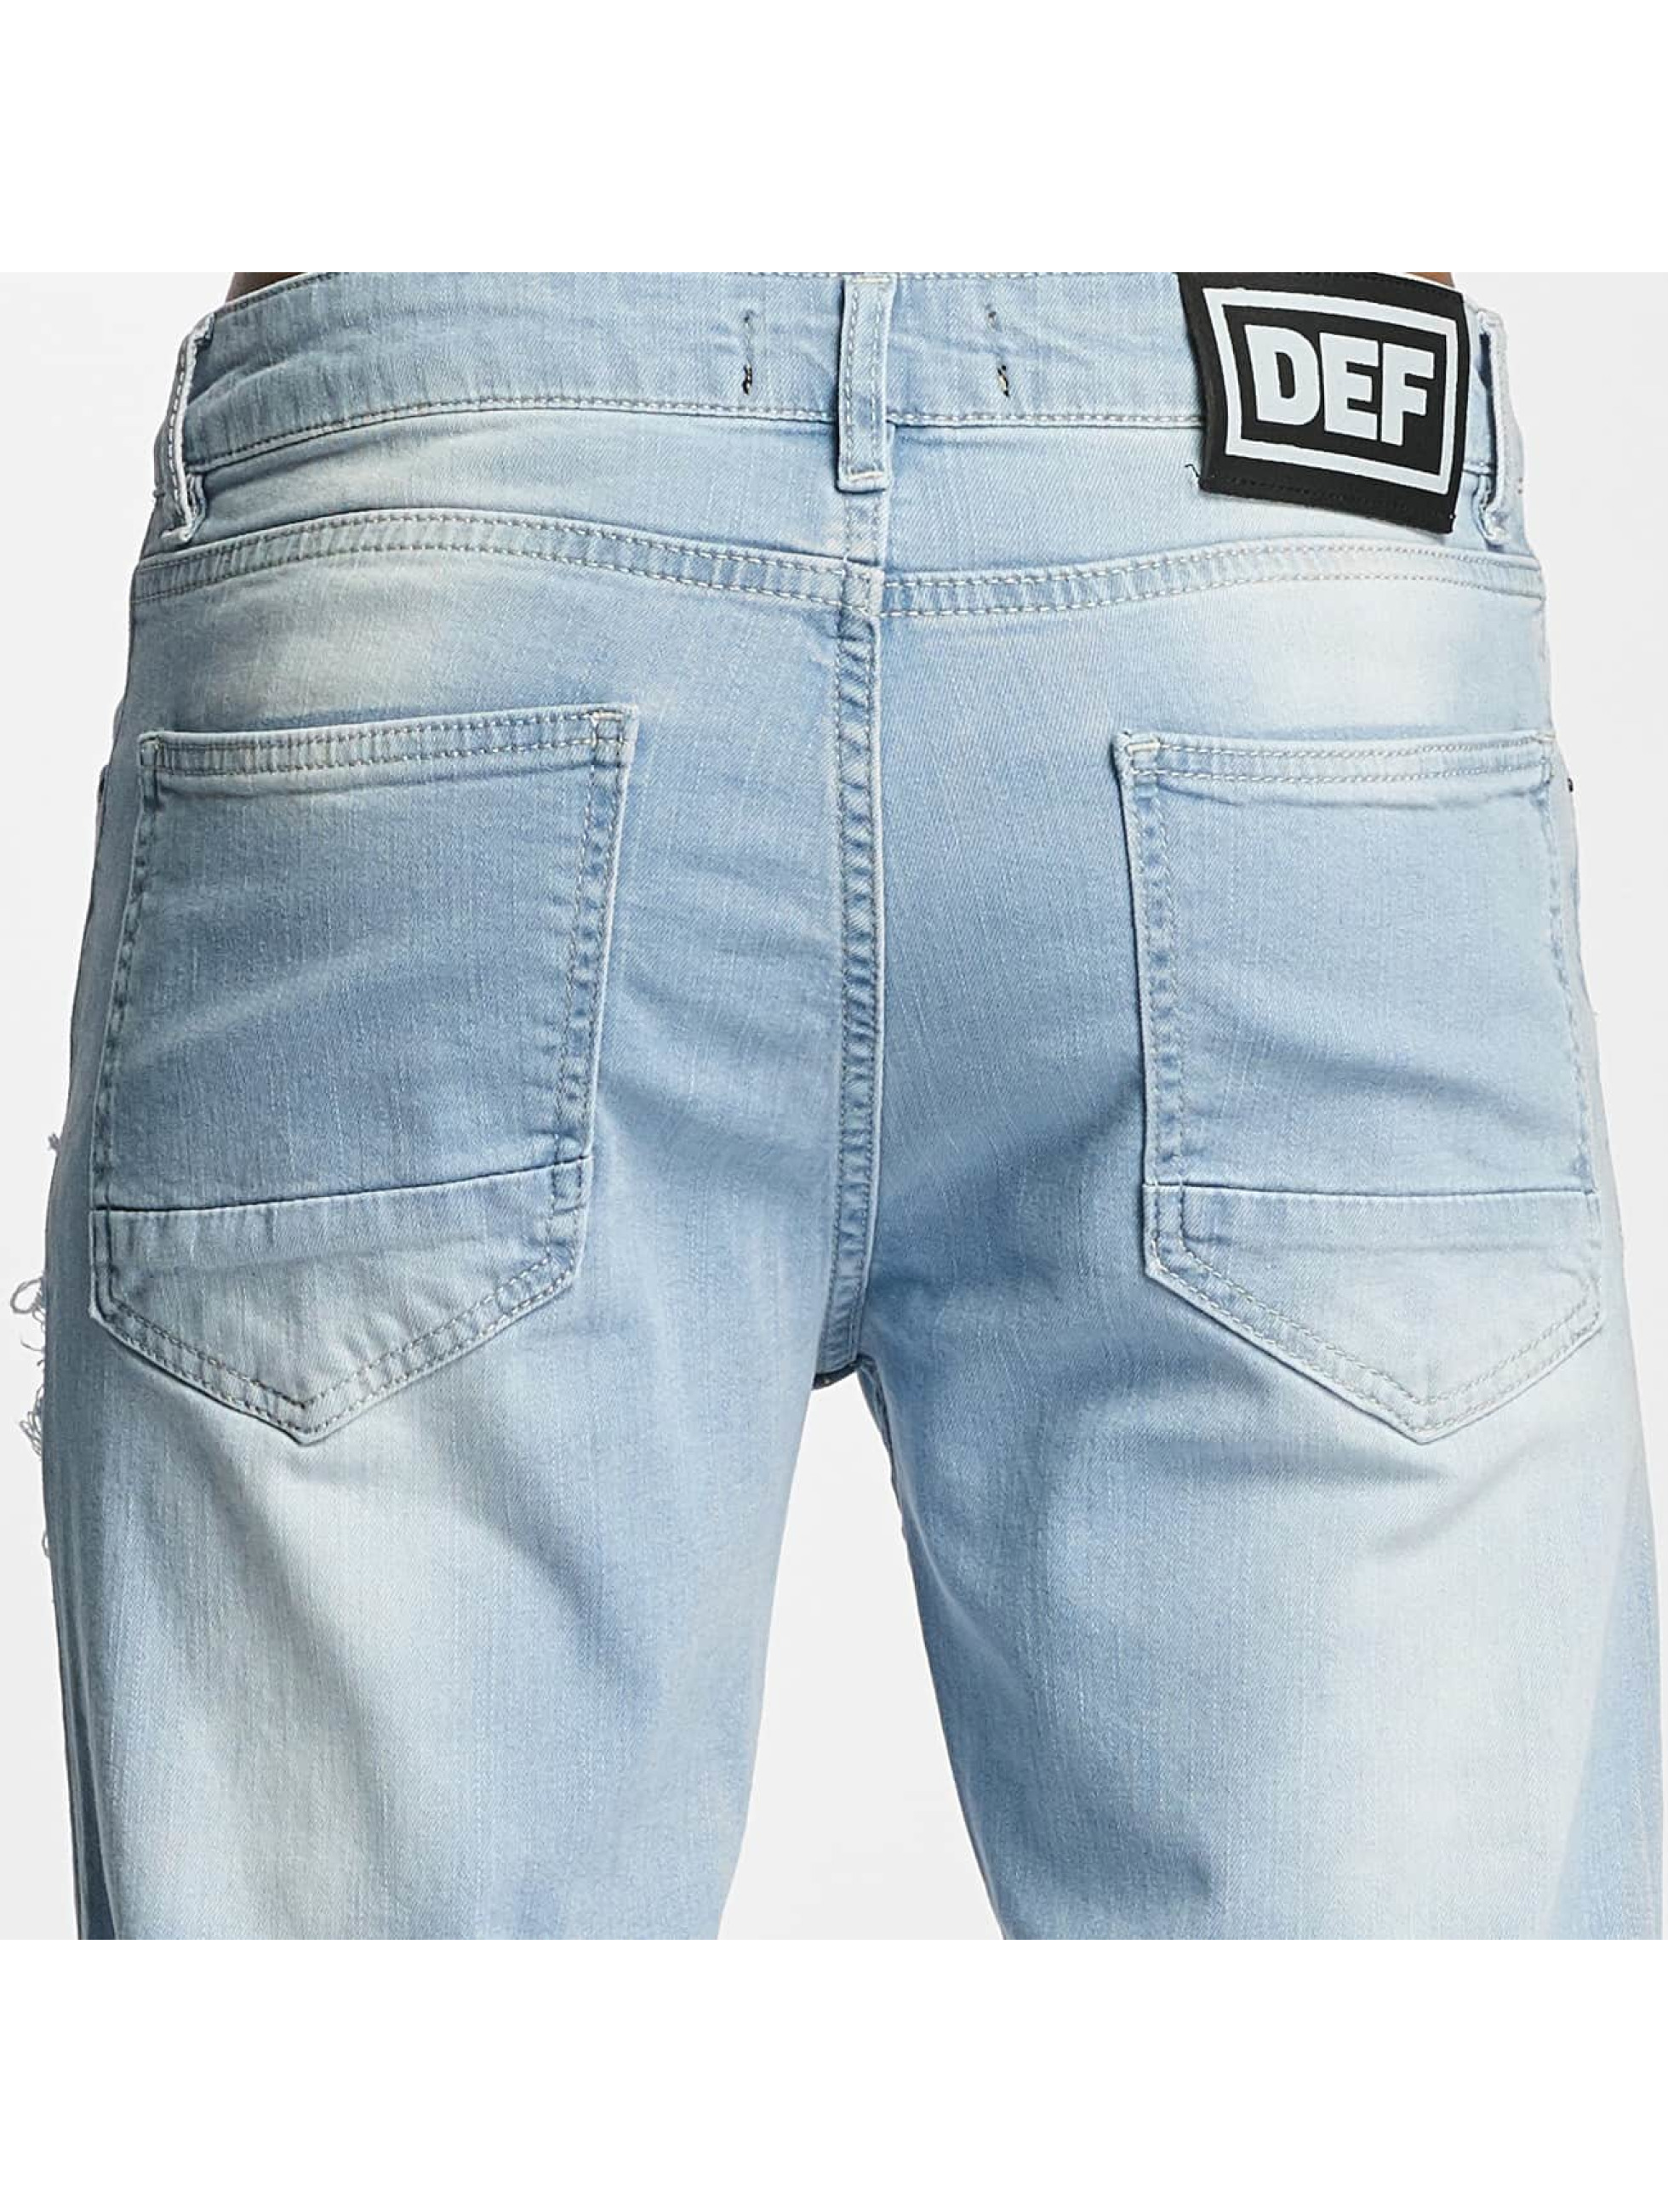 DEF Antifit Used blue